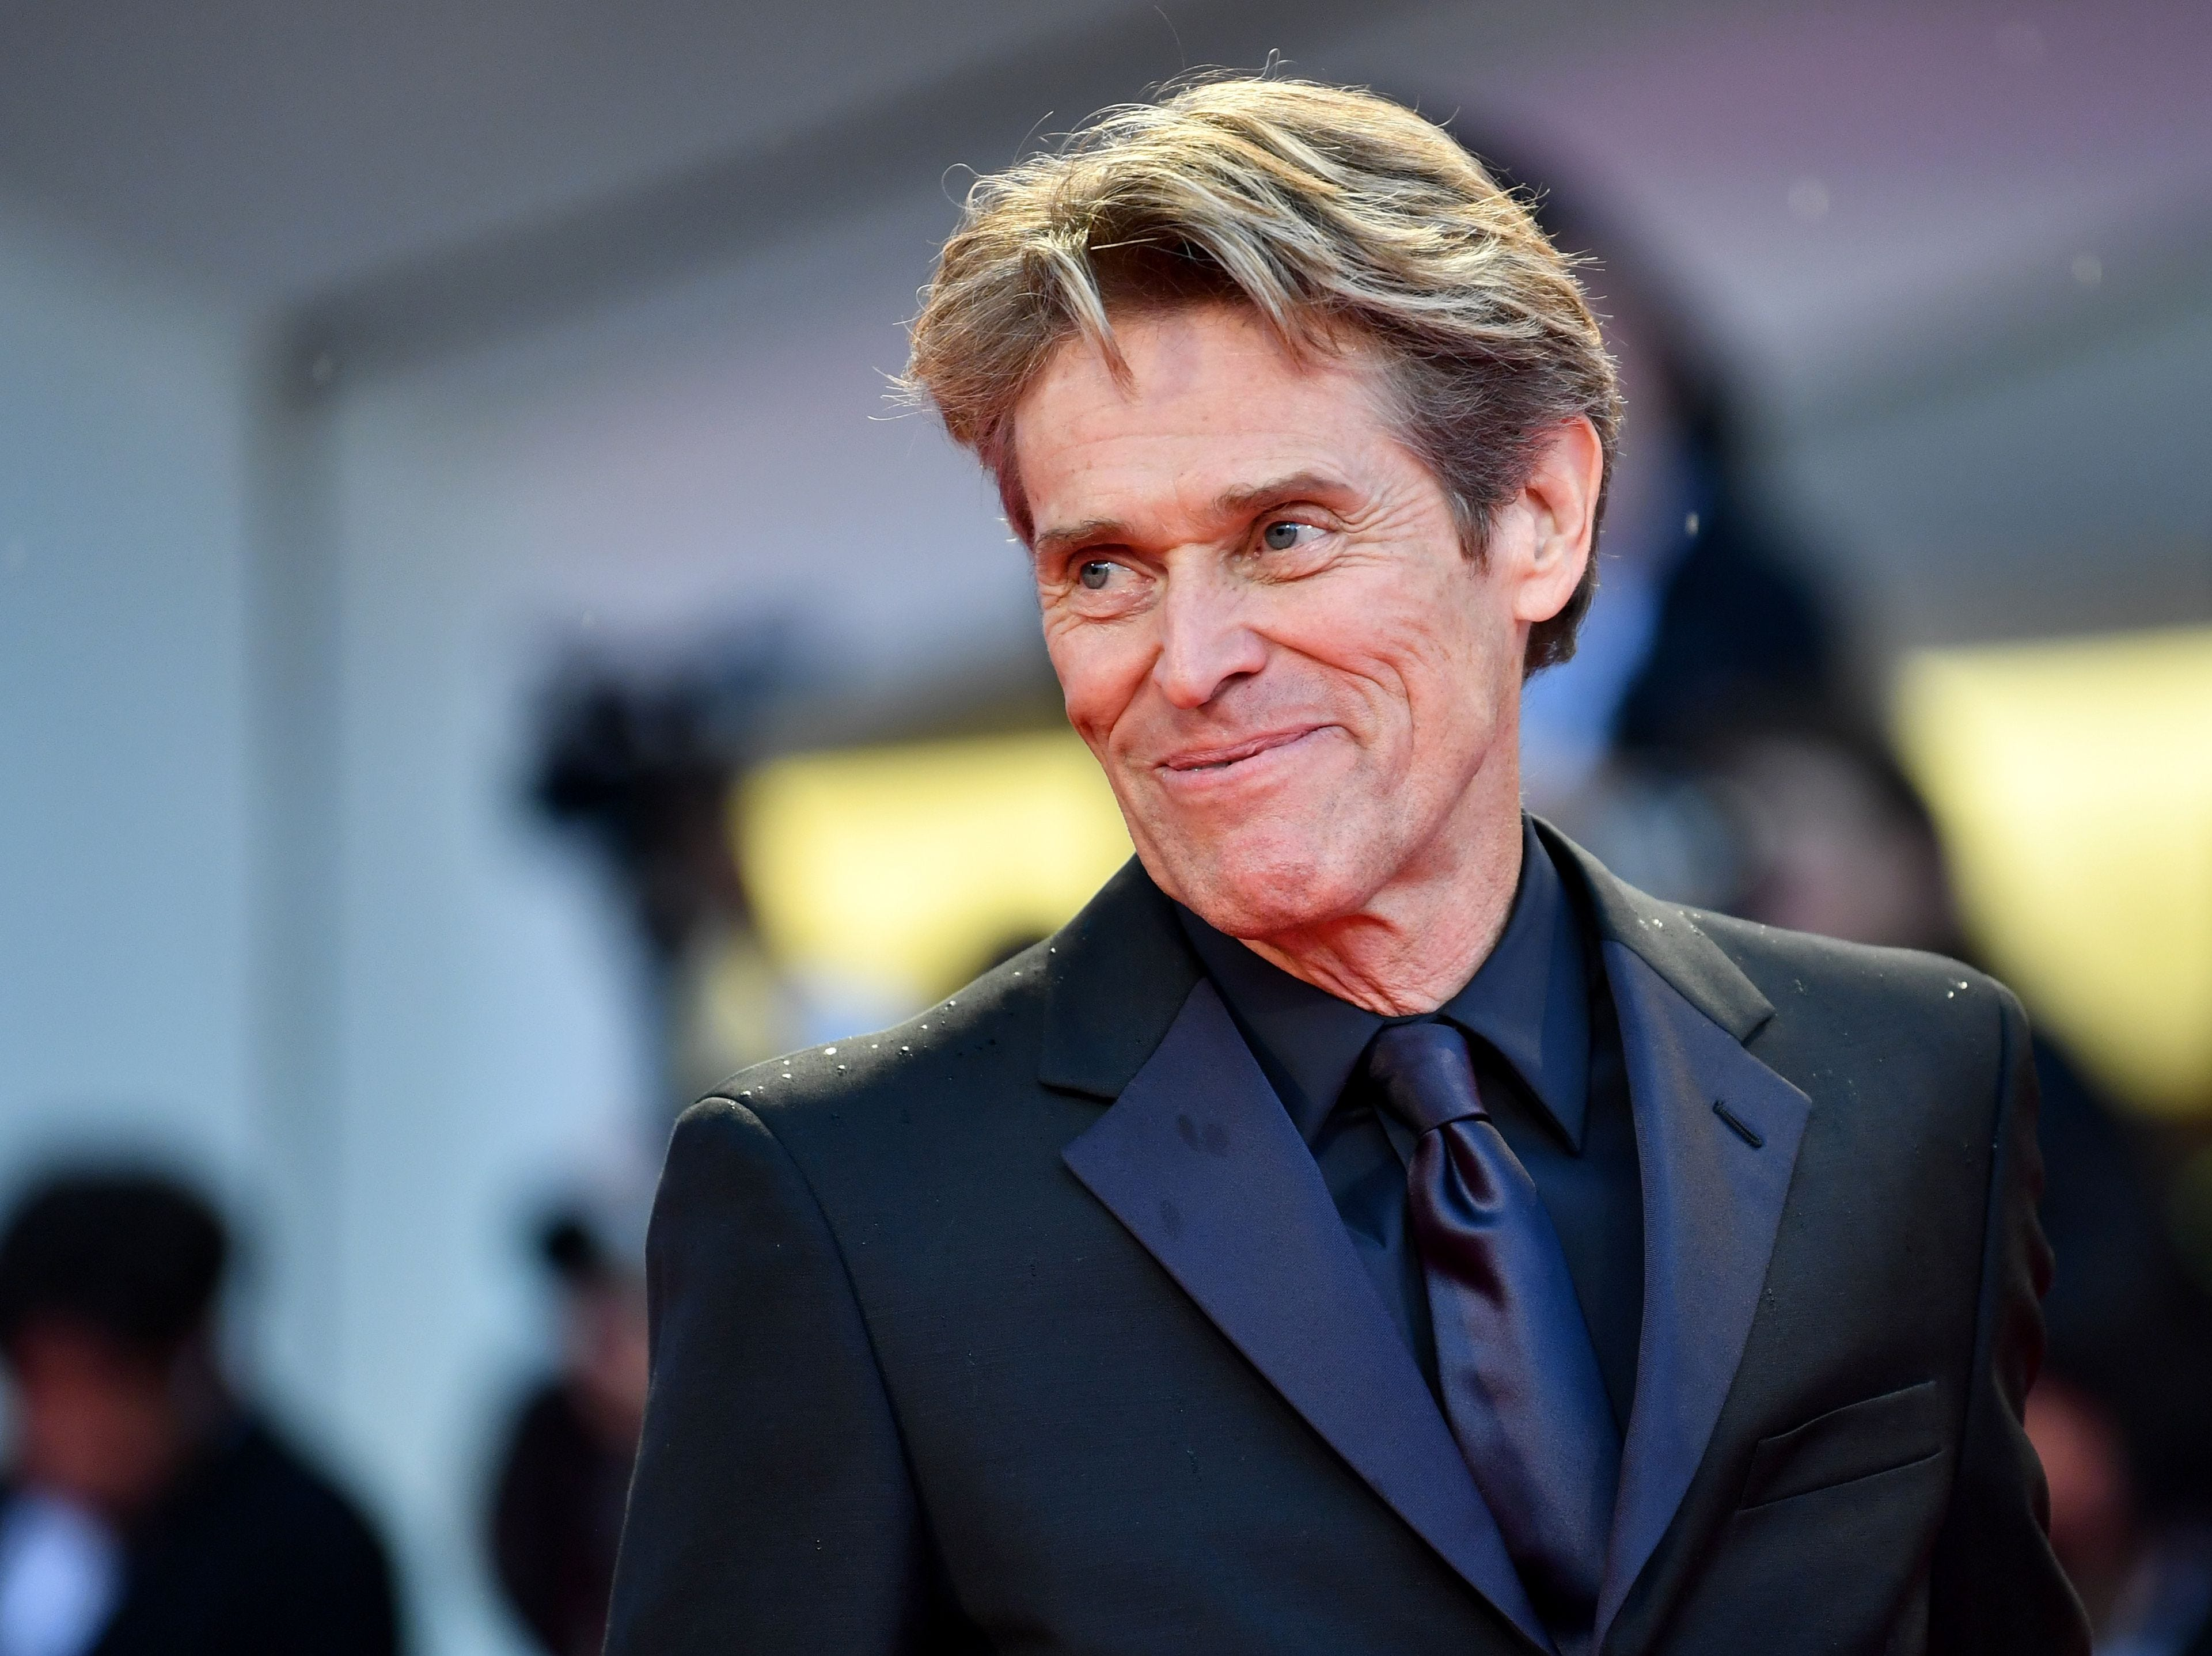 """Actor Willem Dafoe arrives for the premiere of the film """"At Eternity's Gate"""" presented in competition on September 3, 2018 during the 75th Venice Film Festival at Venice Lido. (Photo by Alberto PIZZOLI / AFP)ALBERTO PIZZOLI/AFP/Getty Images ORIG FILE ID: AFP_18T8WX"""